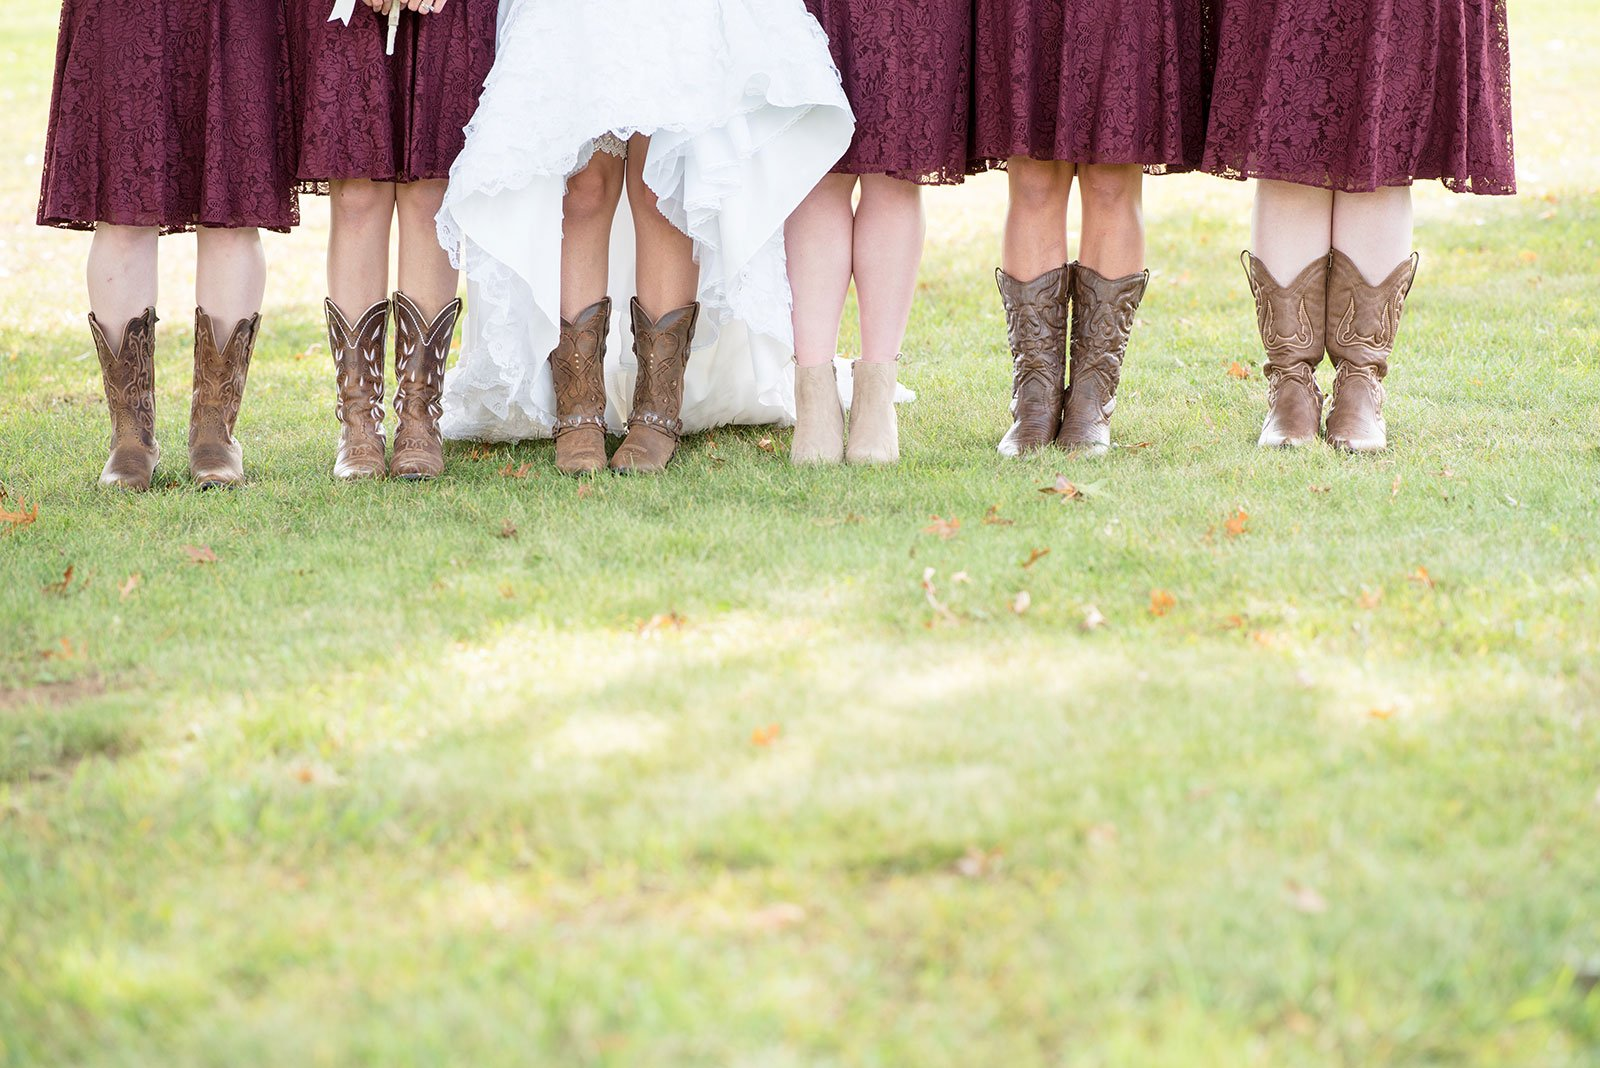 Line of bridesmaids and bride showing matching cowboy boots